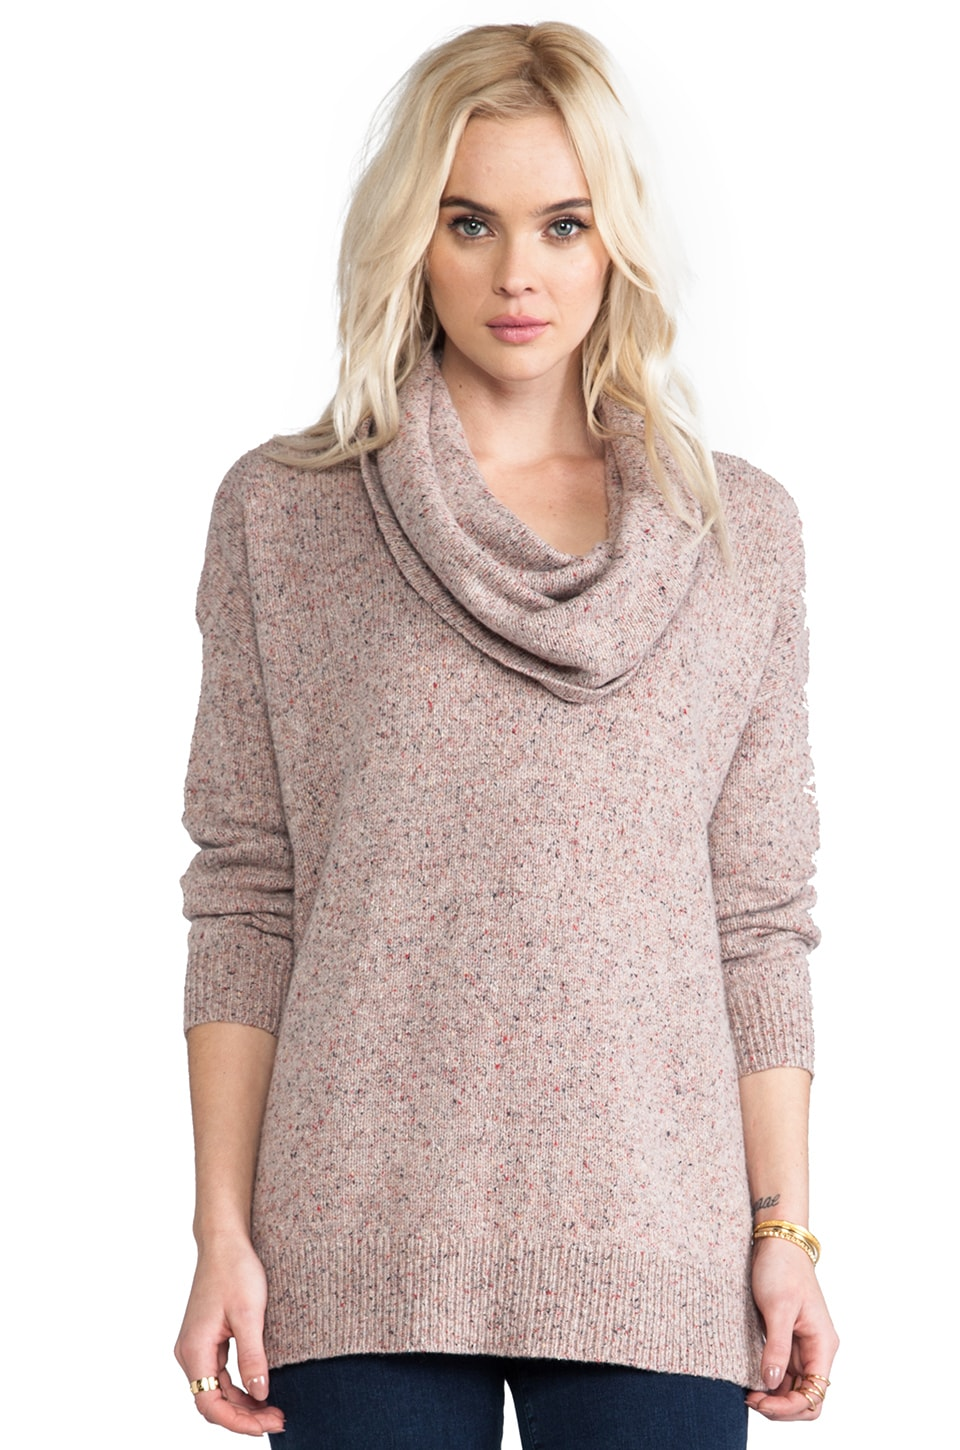 Joie Multi Color Marled Knit Yasemin Sweater in Light Heather Oatmeal